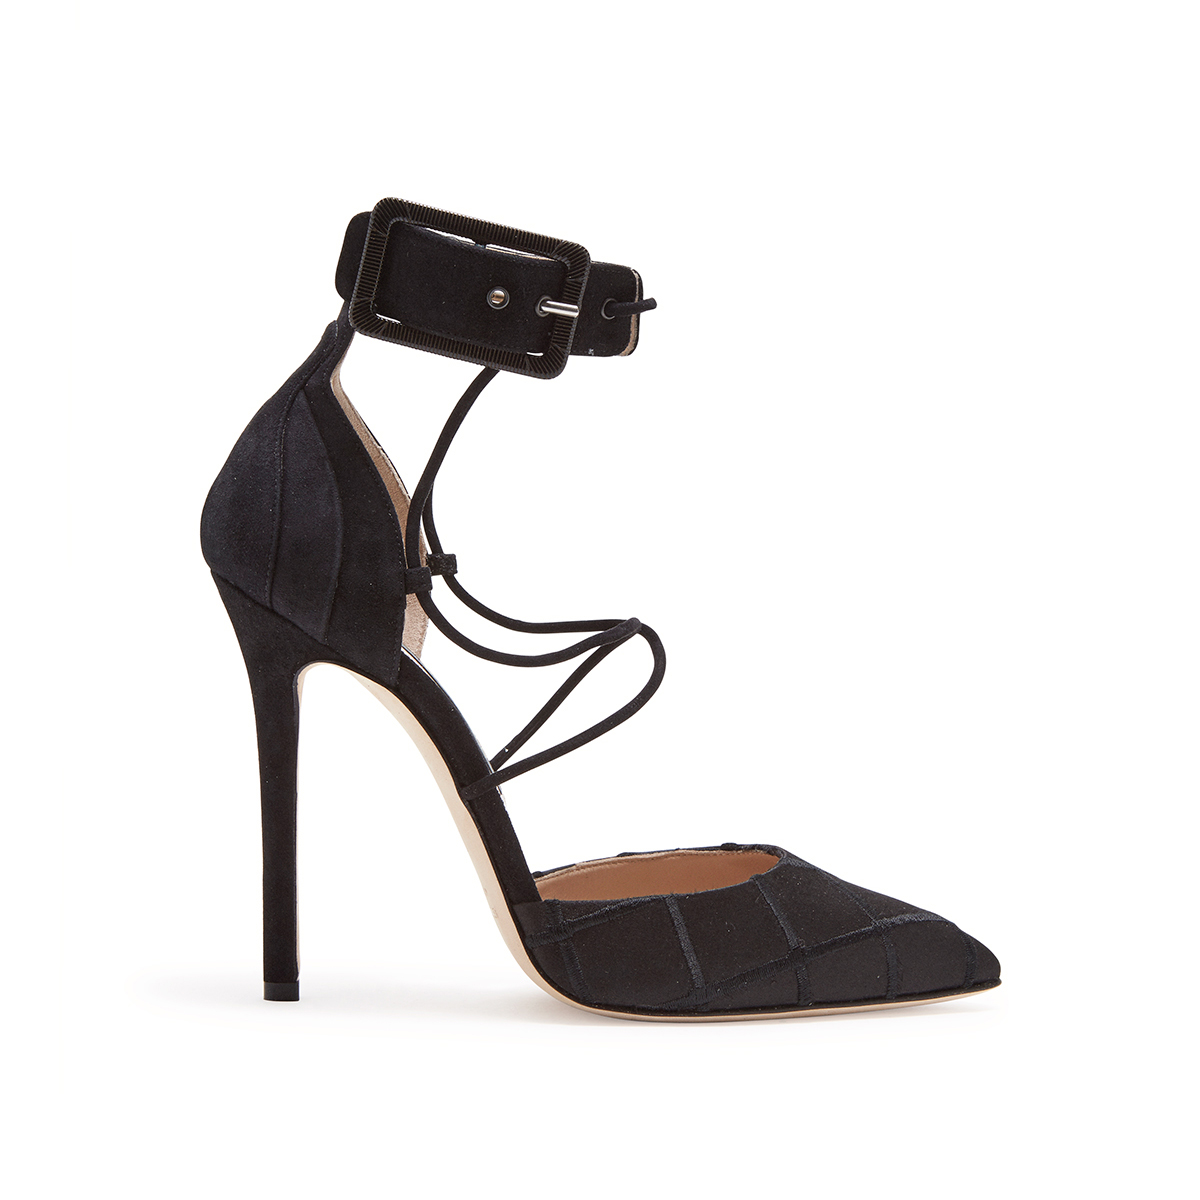 Zac Posen Ankle-Strap Pumps